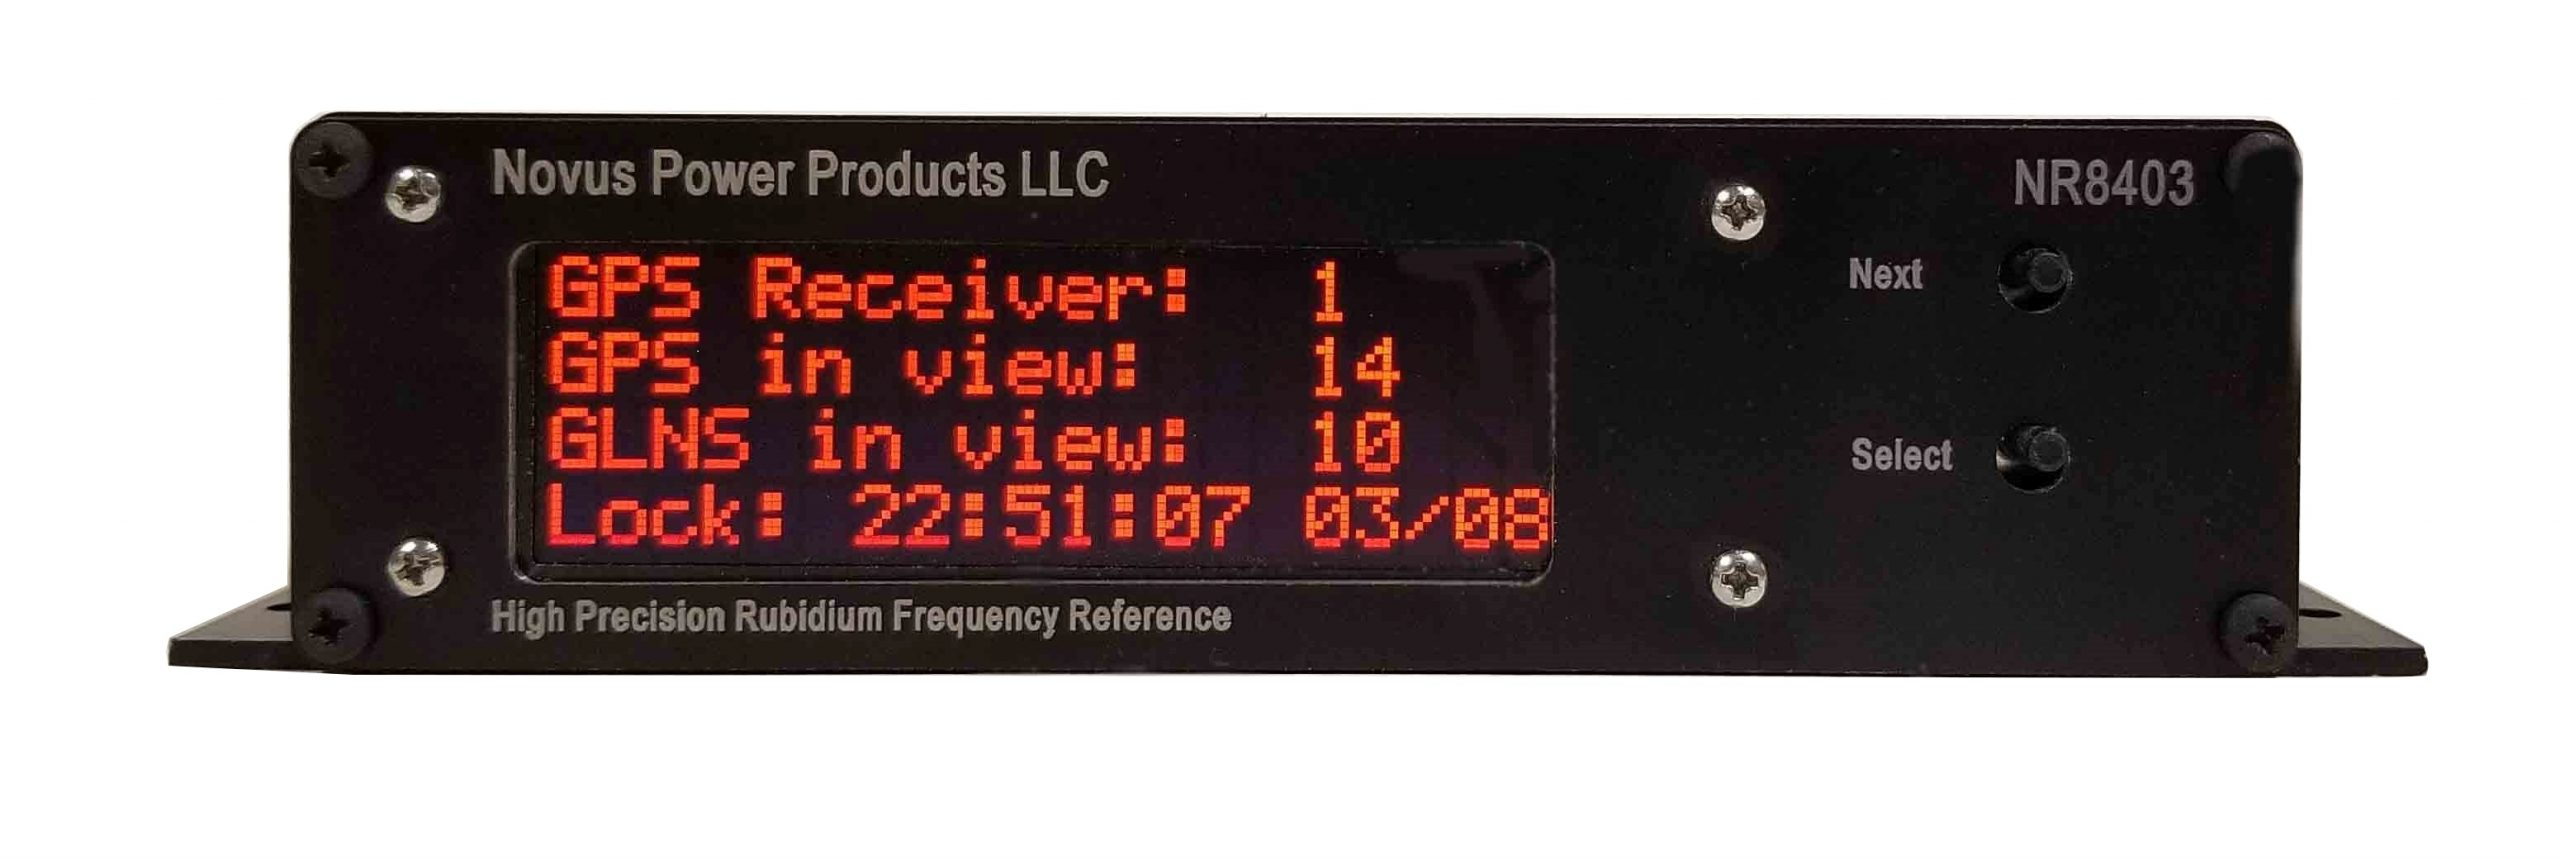 Low Noise Three Channel Rubidium Frequency Reference with Optional Display NR8403-RO Image